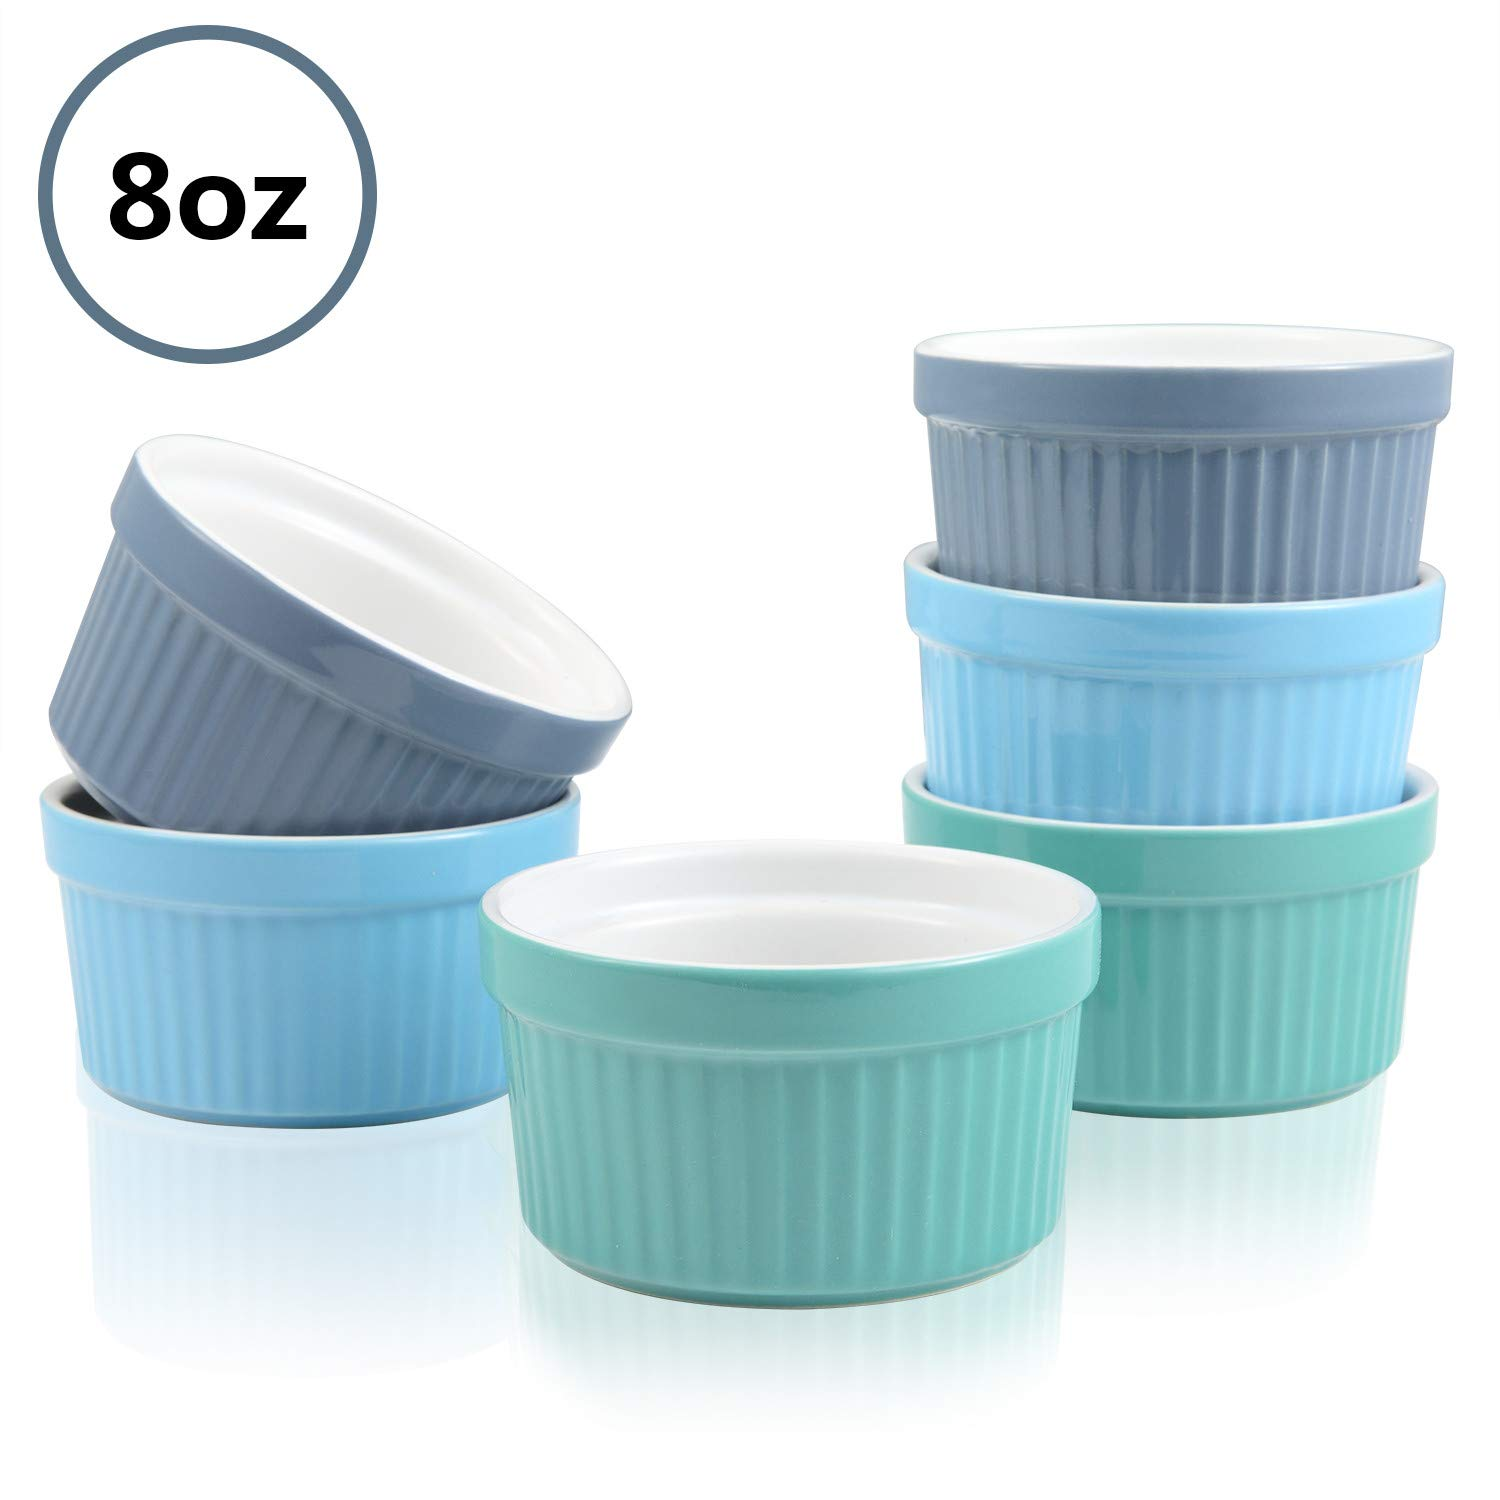 8oz Ramekins Porcelain Souffle Dishes Ceramic Baking Cups Custard Cups for Pudding, Creme Brulee, Ice Cream, Cooking, Set of 6, Assorted Colors by STARUBY